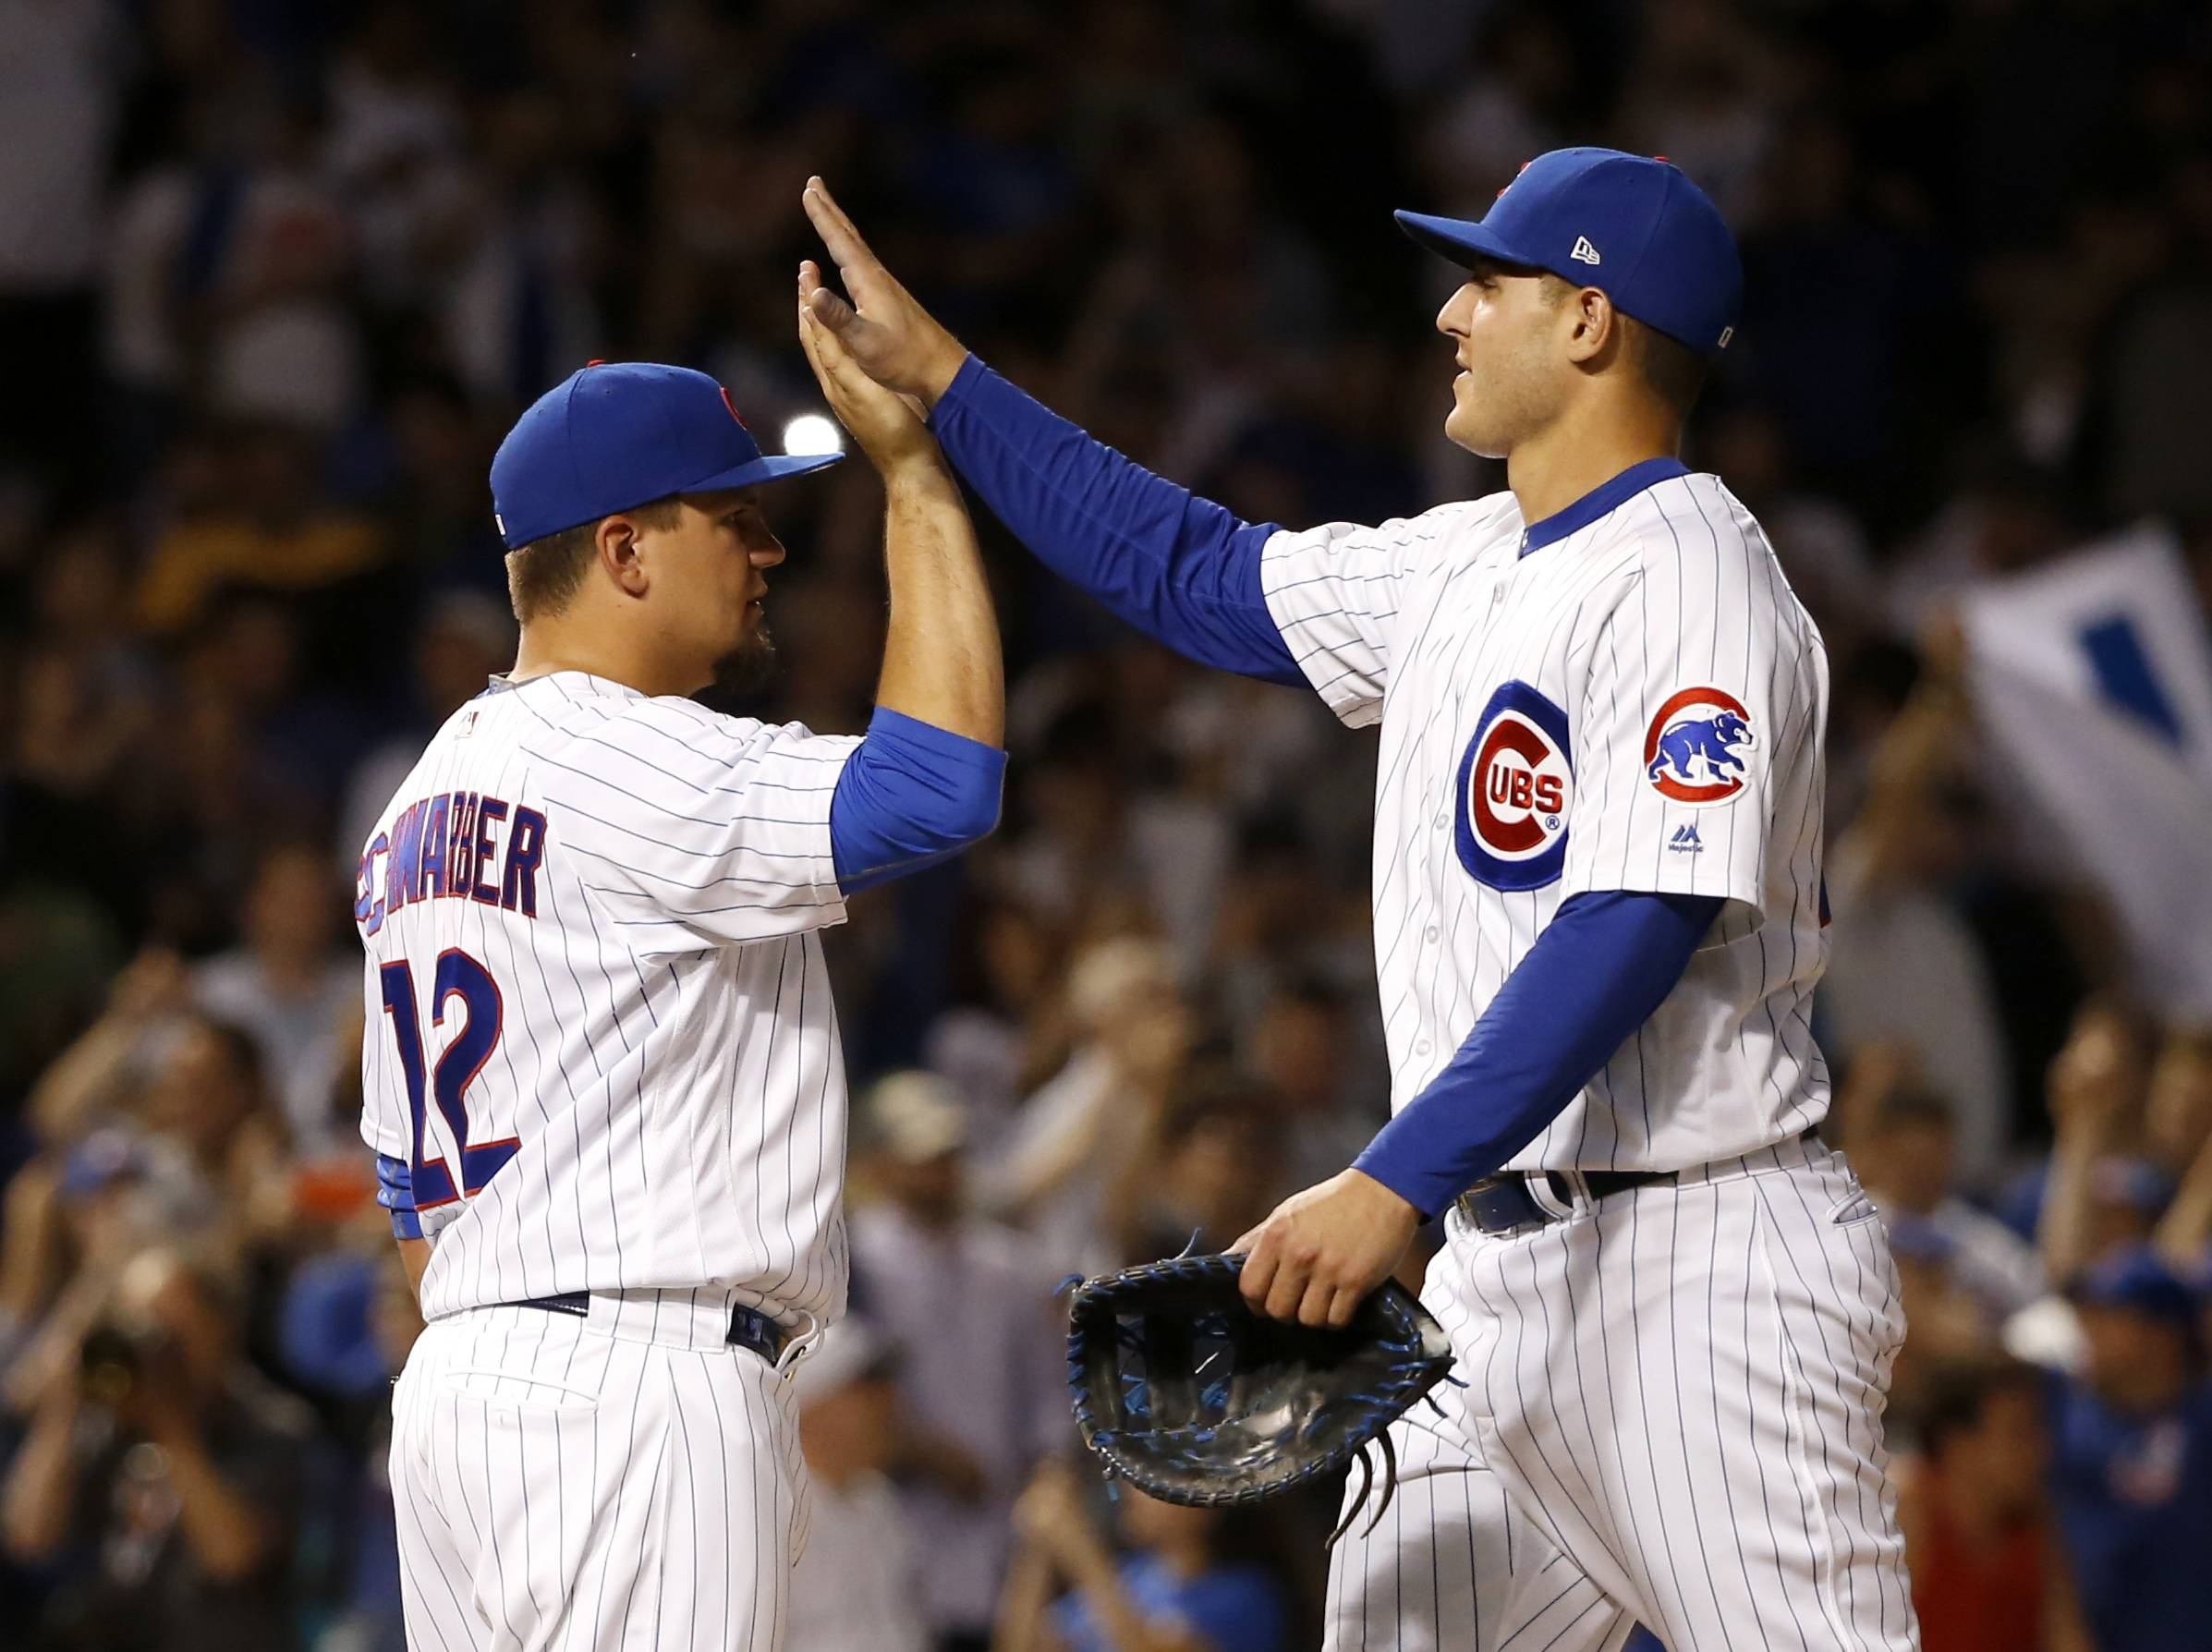 Chicago Cubs' Kyle Schwarber (12) and Anthony Rizzo celebrate the team's 7-5 win over the Cincinnati Reds in a baseball game Wednesday, May 17, 2017, in Chicago.